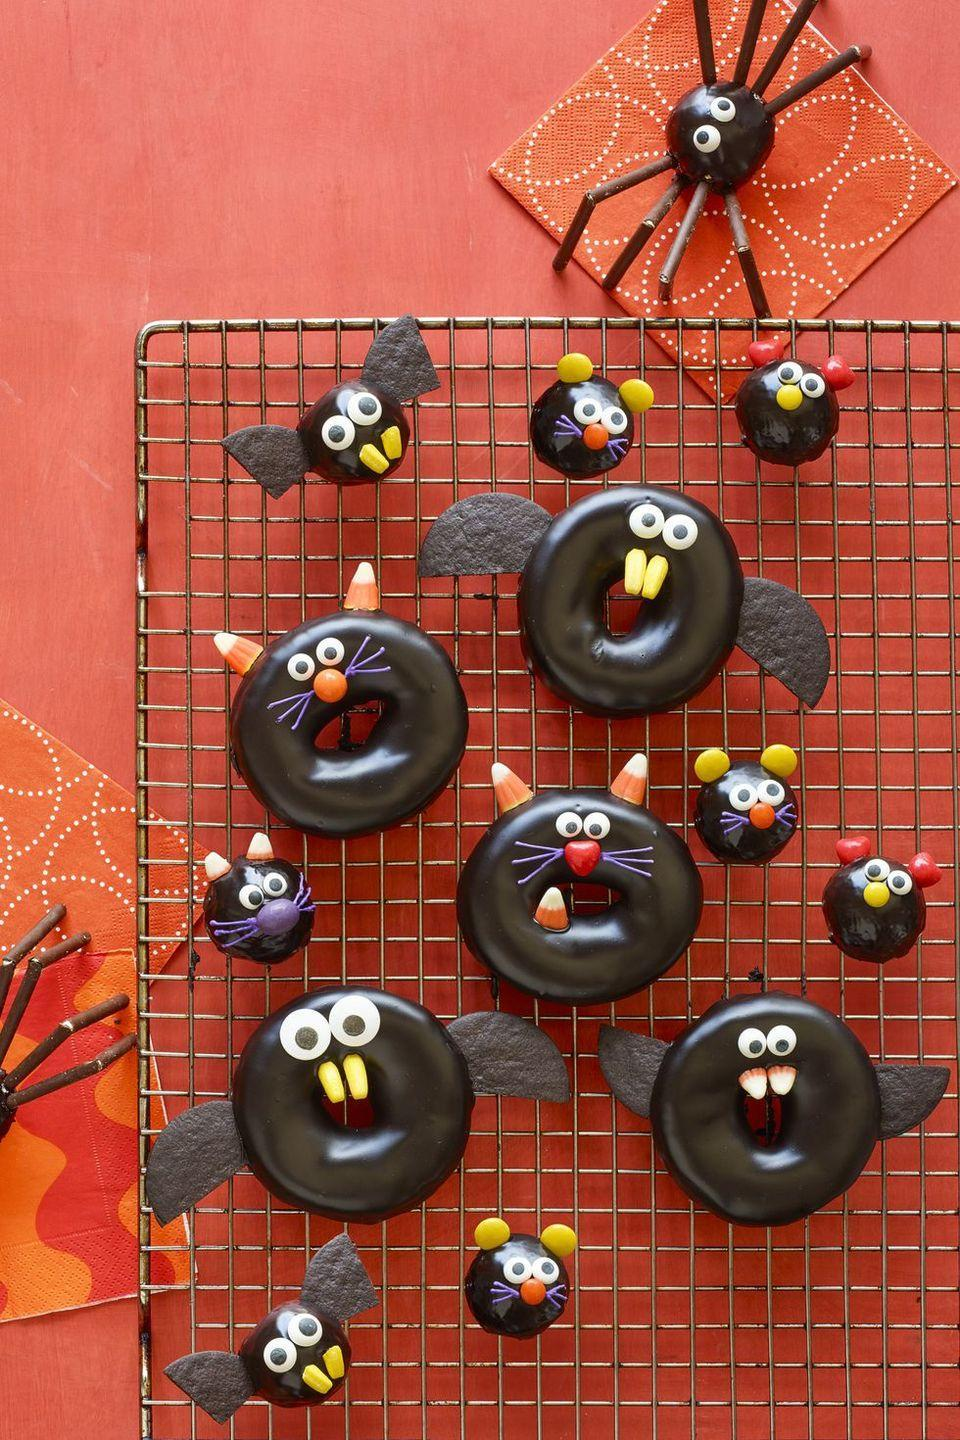 """<p>Pressed on time? Look no further than these store-bought doughnuts outfitted with candy corn, M&Ms, and more.</p><p><strong><em><a href=""""https://www.womansday.com/food-recipes/food-drinks/a23460042/black-cat-bat-spider-and-mice-doughnuts-recipe/"""" rel=""""nofollow noopener"""" target=""""_blank"""" data-ylk=""""slk:Get the Black Cat, Bat, Spider, and Mice Doughnuts recipe."""" class=""""link rapid-noclick-resp"""">Get the Black Cat, Bat, Spider, and Mice Doughnuts recipe. </a></em></strong></p>"""